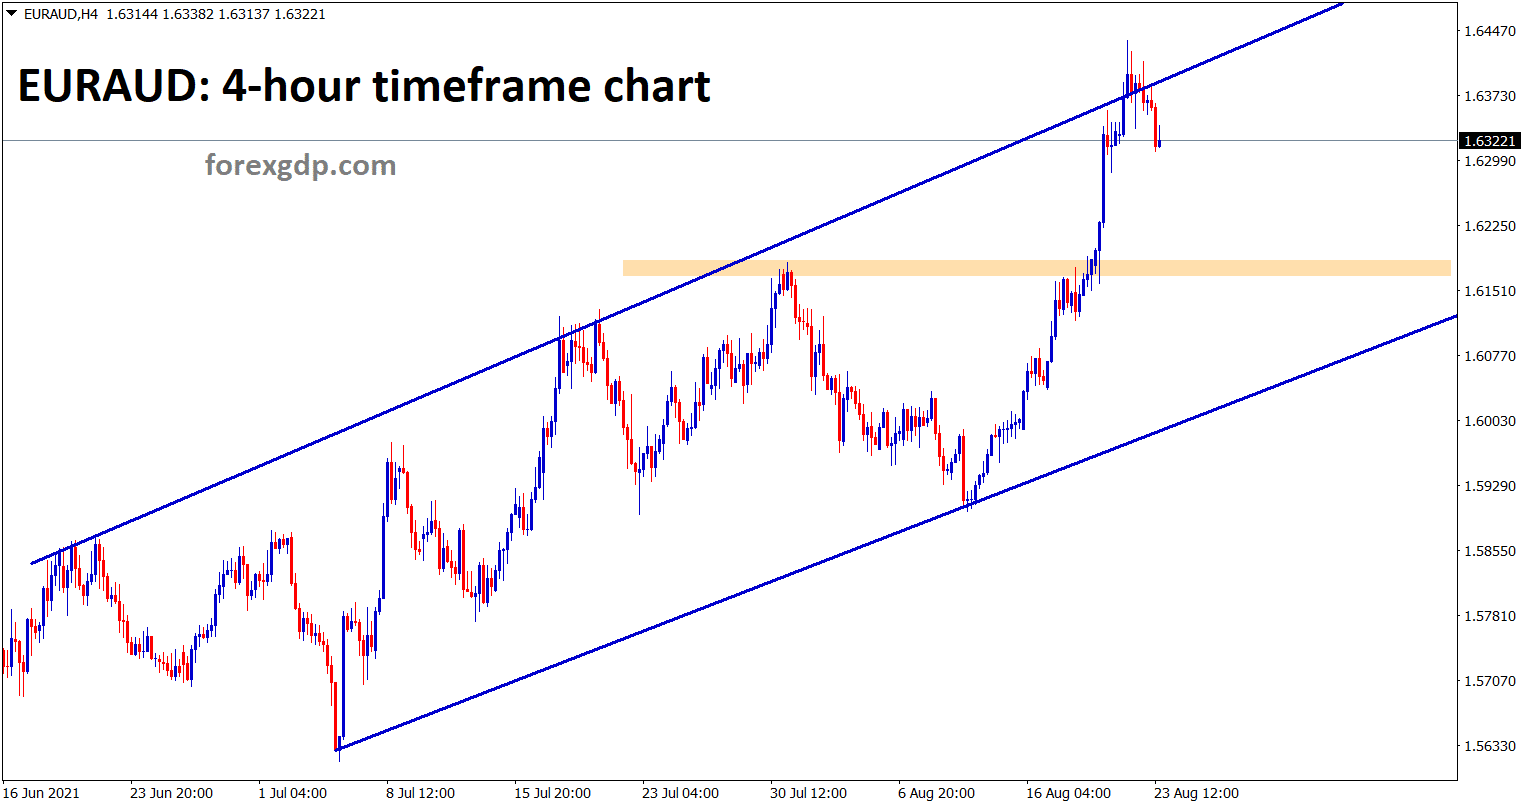 EURAUD hits the higher high of the uptrend line and now the correction is going on